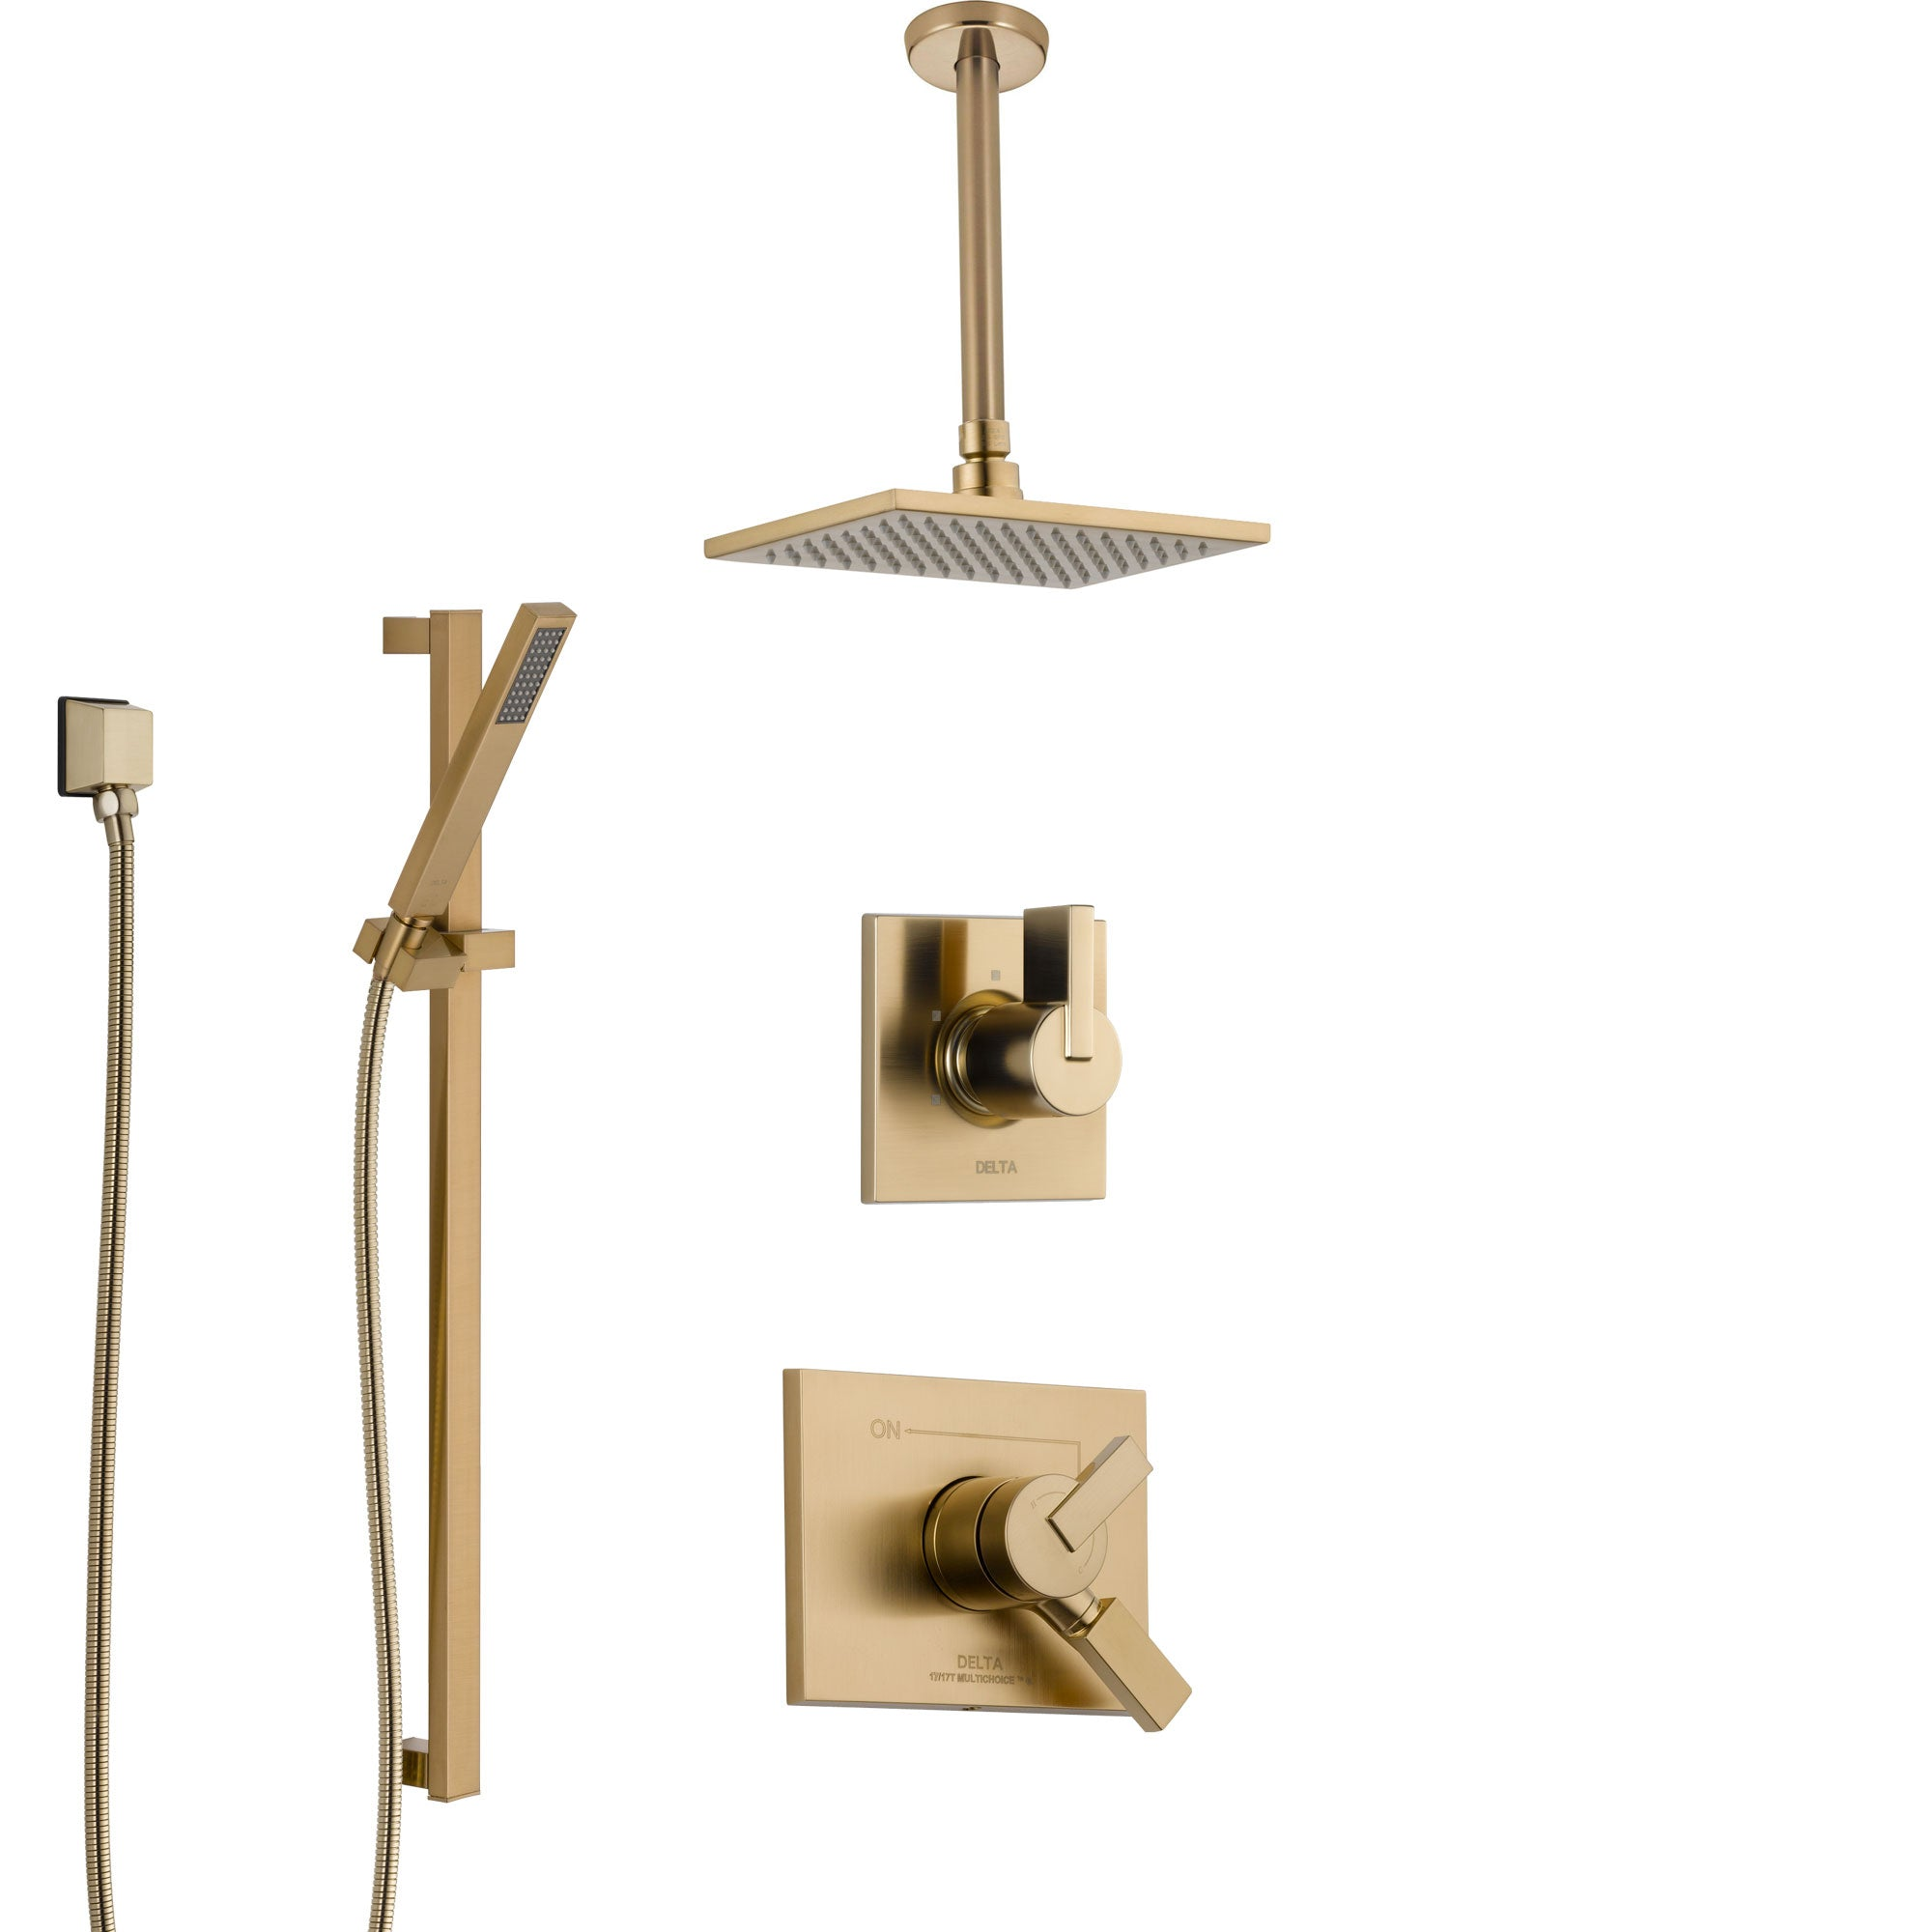 Delta Vero Champagne Bronze Shower System with Dual Control Handle, Diverter, Ceiling Mount Showerhead, and Hand Shower with Slidebar SS1753CZ2